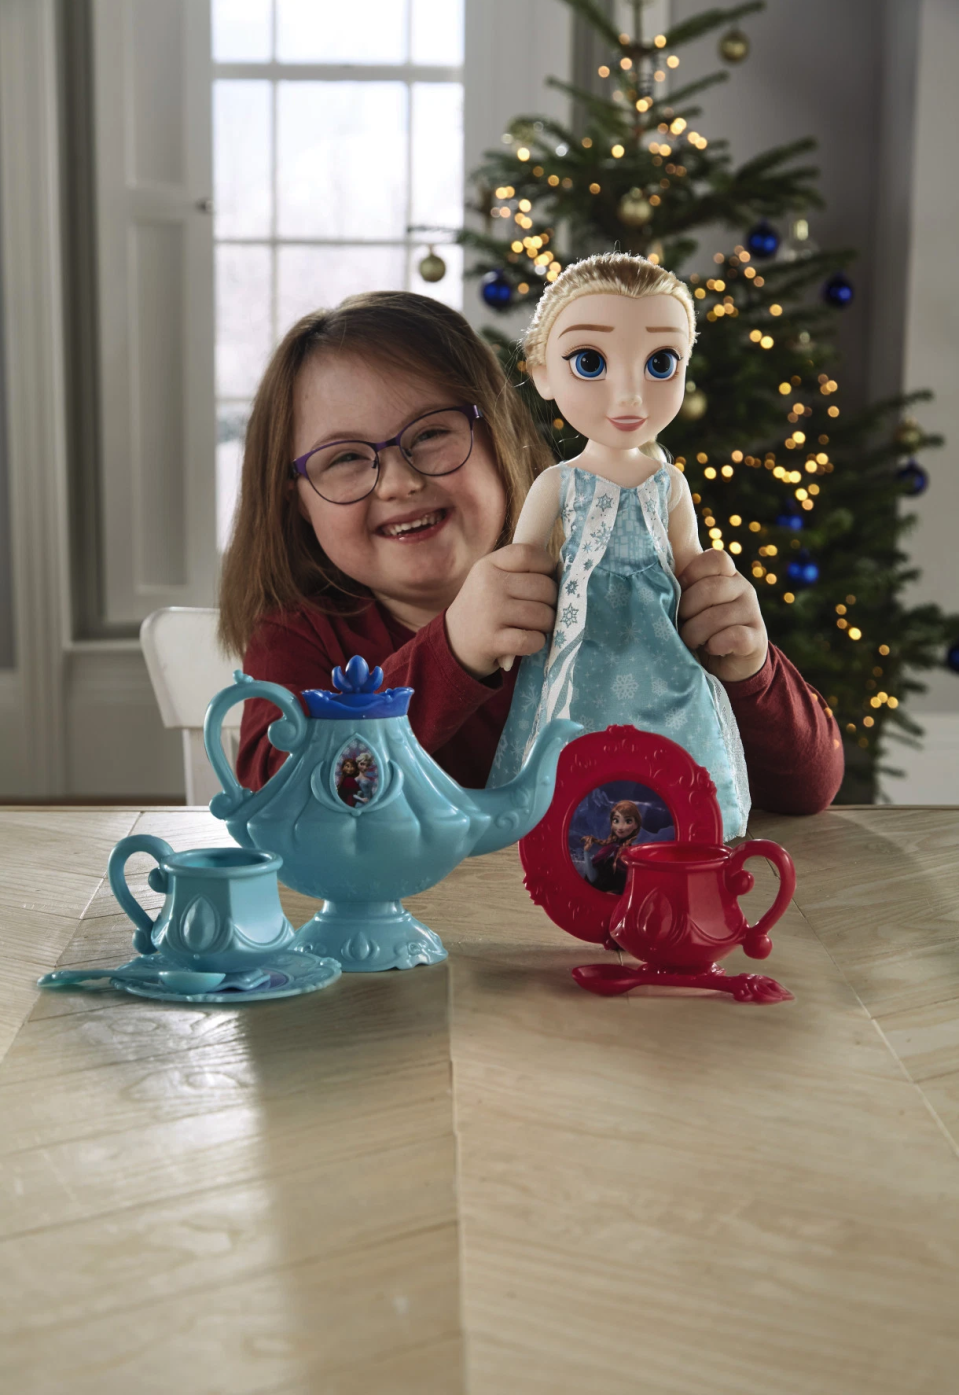 Elsa and Anna dolls are available, too. [Photo: Aldi]